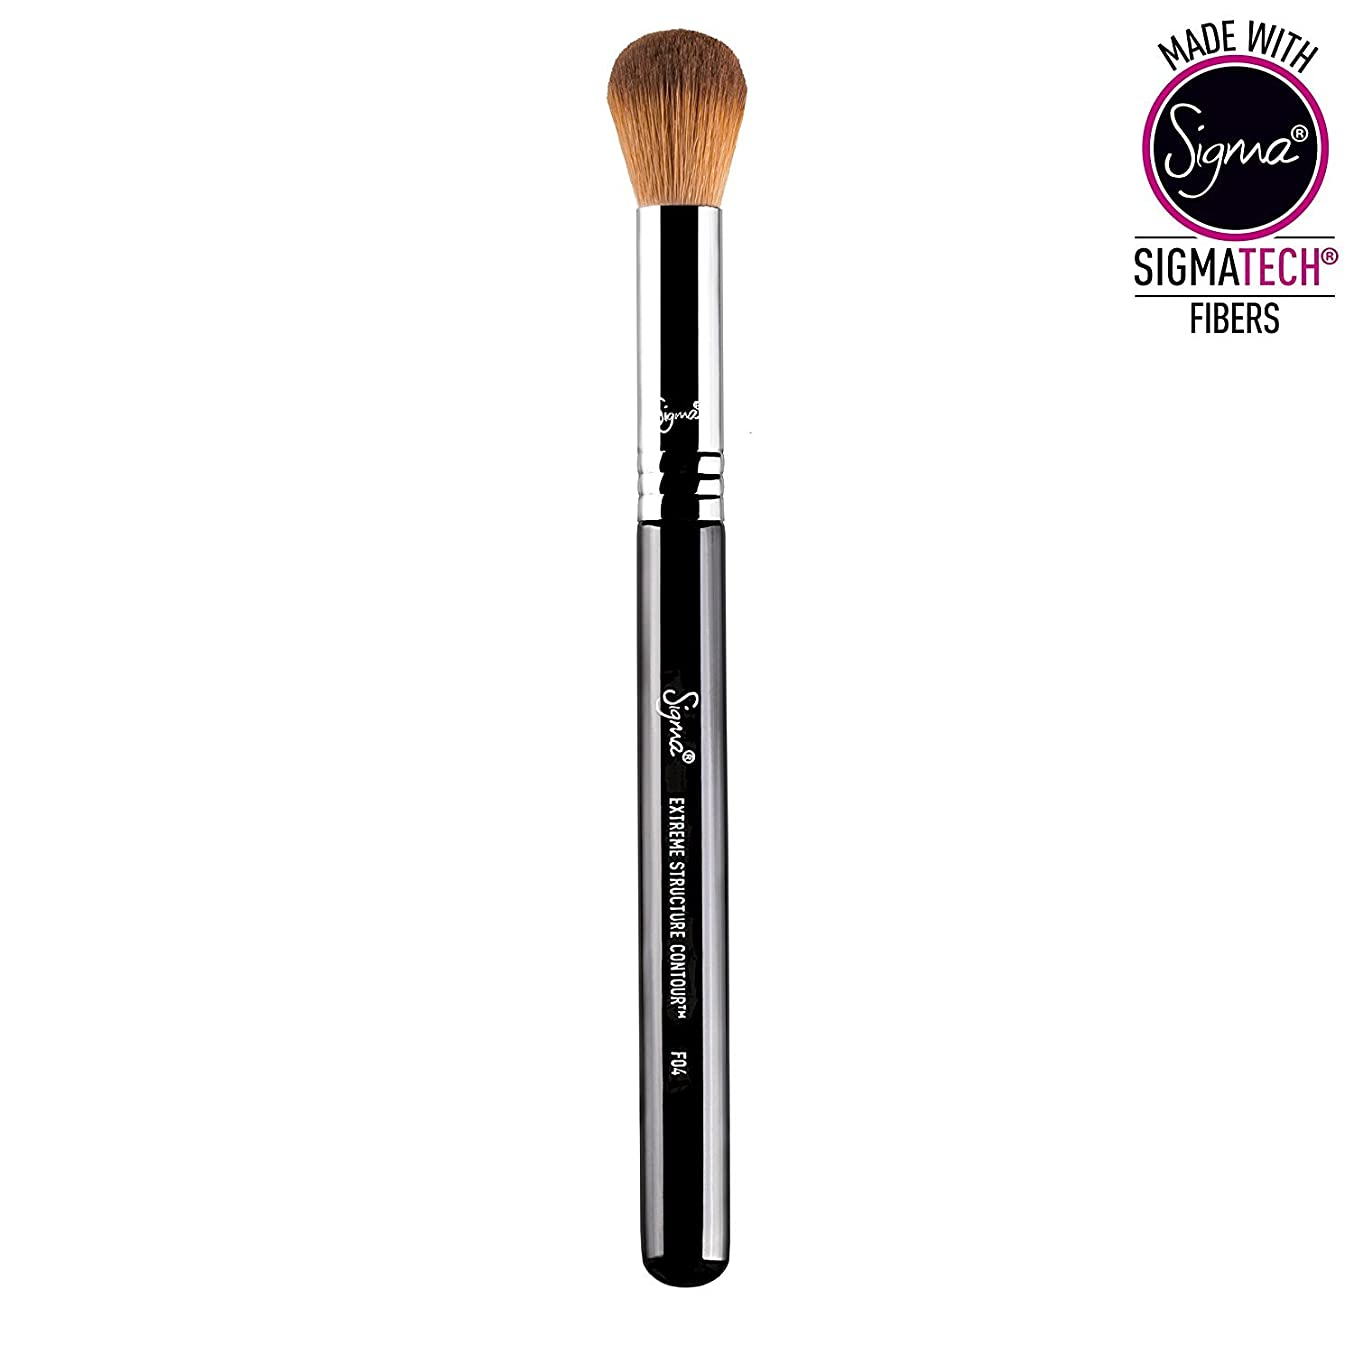 スラム街戦術ずらすSigma Beauty F04 Extreme Structure Contour Brush -並行輸入品